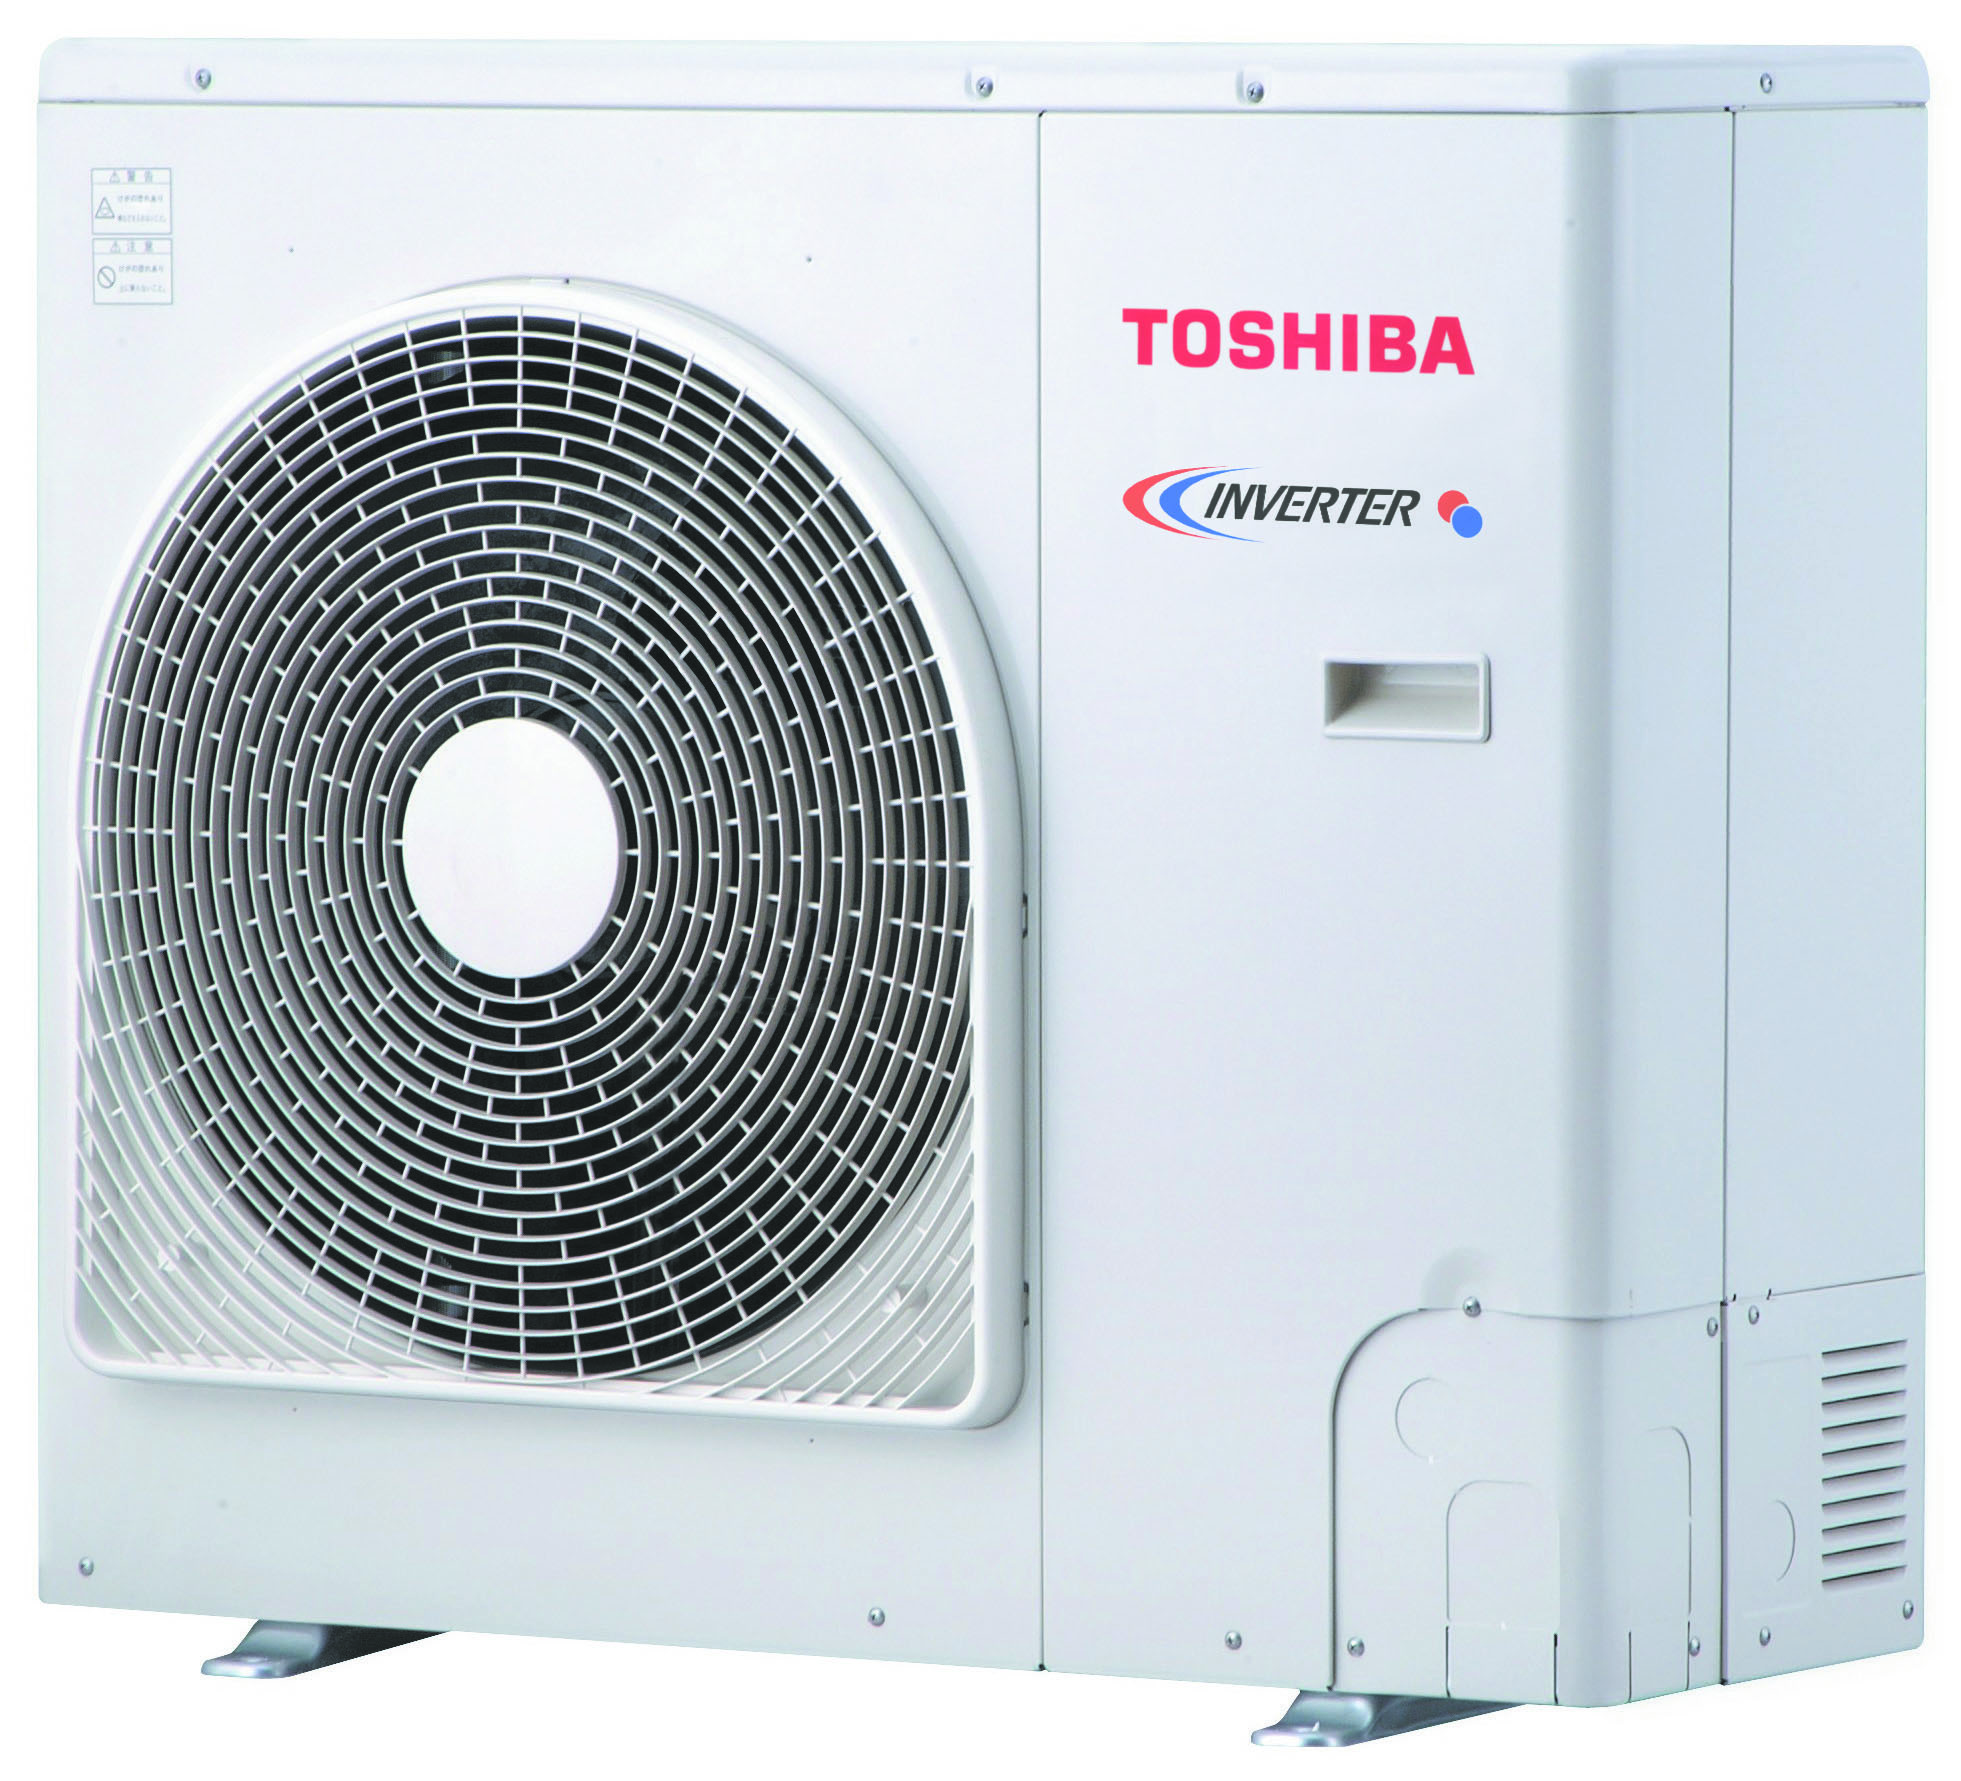 #B2191D Climatizzatori Toshiba – Skobon D.o.o. Most Effective 4815 Inverter Ac Unit pictures with 1961x1781 px on helpvideos.info - Air Conditioners, Air Coolers and more